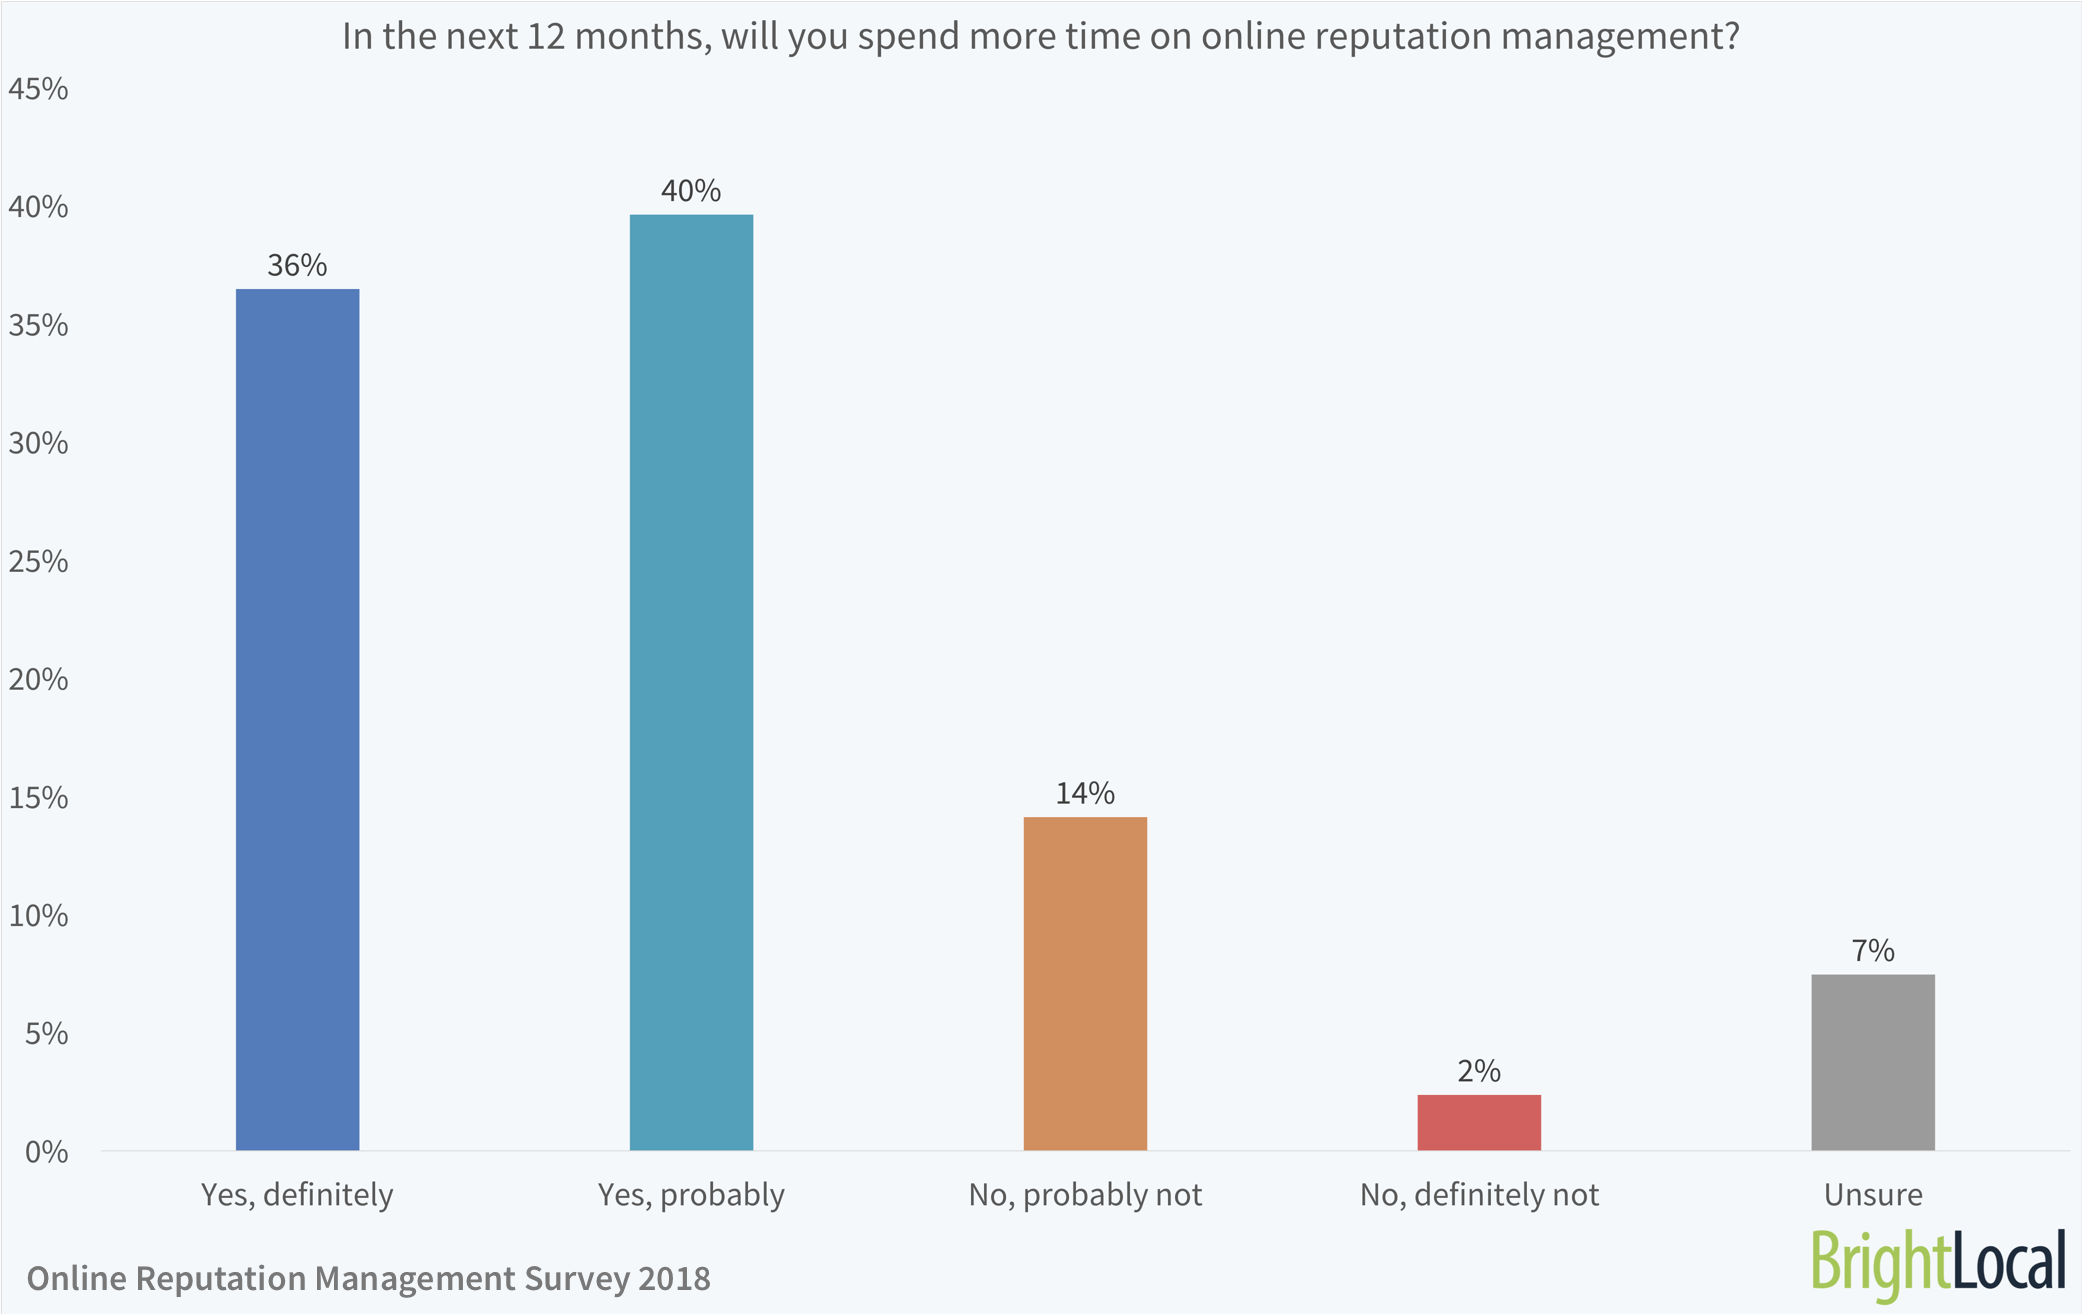 In the next 12 months, will you spend more time on online reputation management?